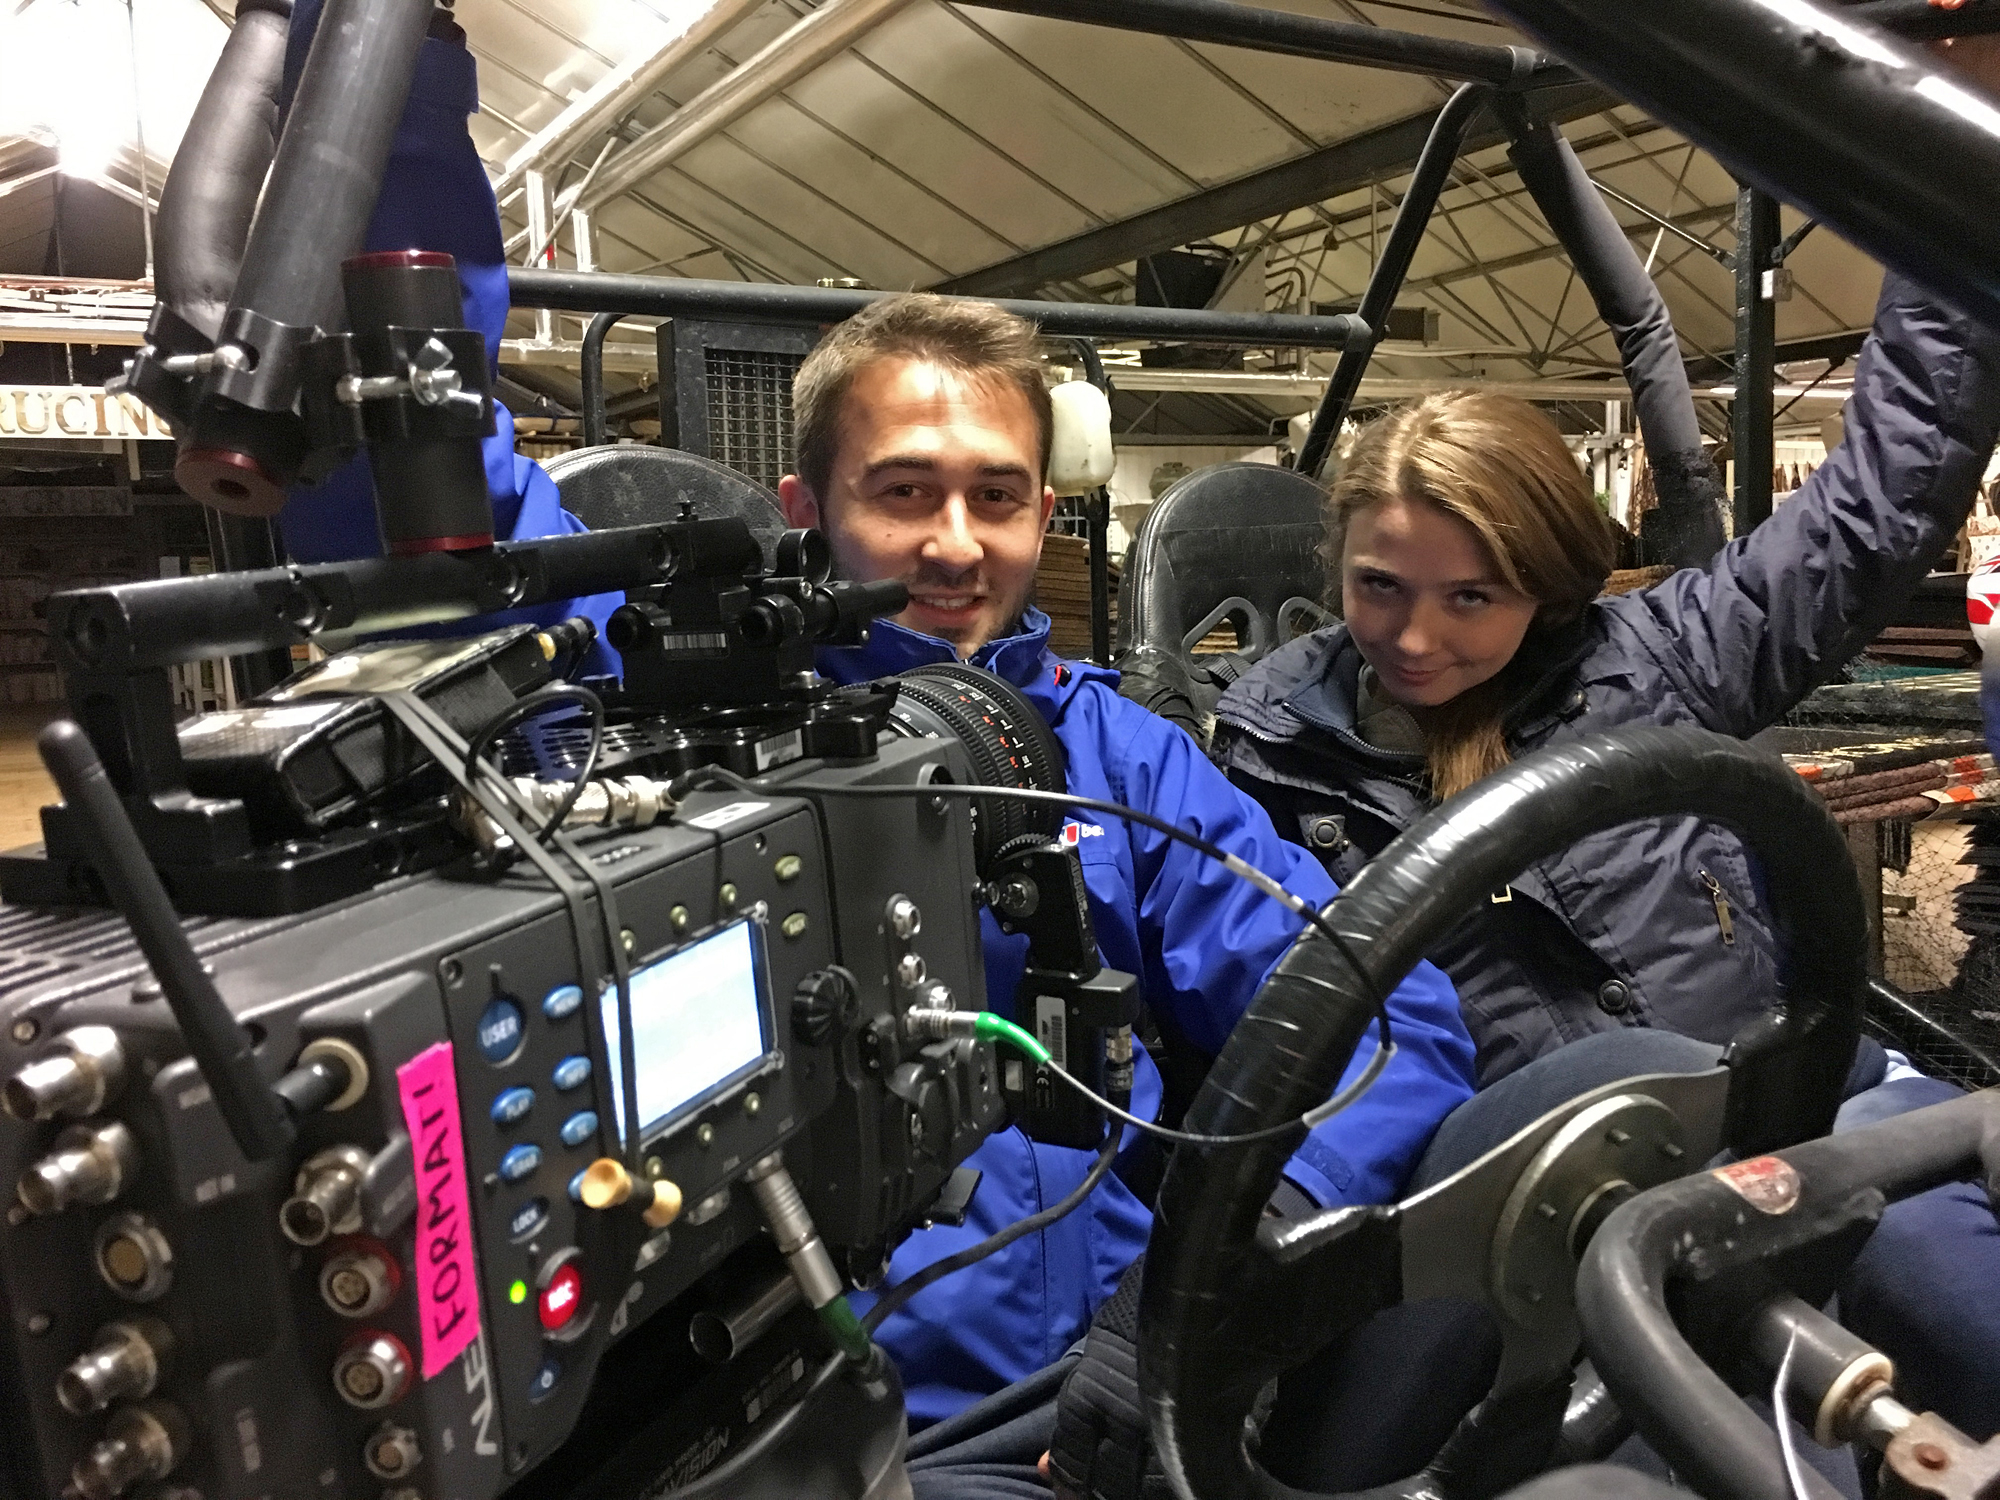 Dan with Jessica Barden and the Alexa 65